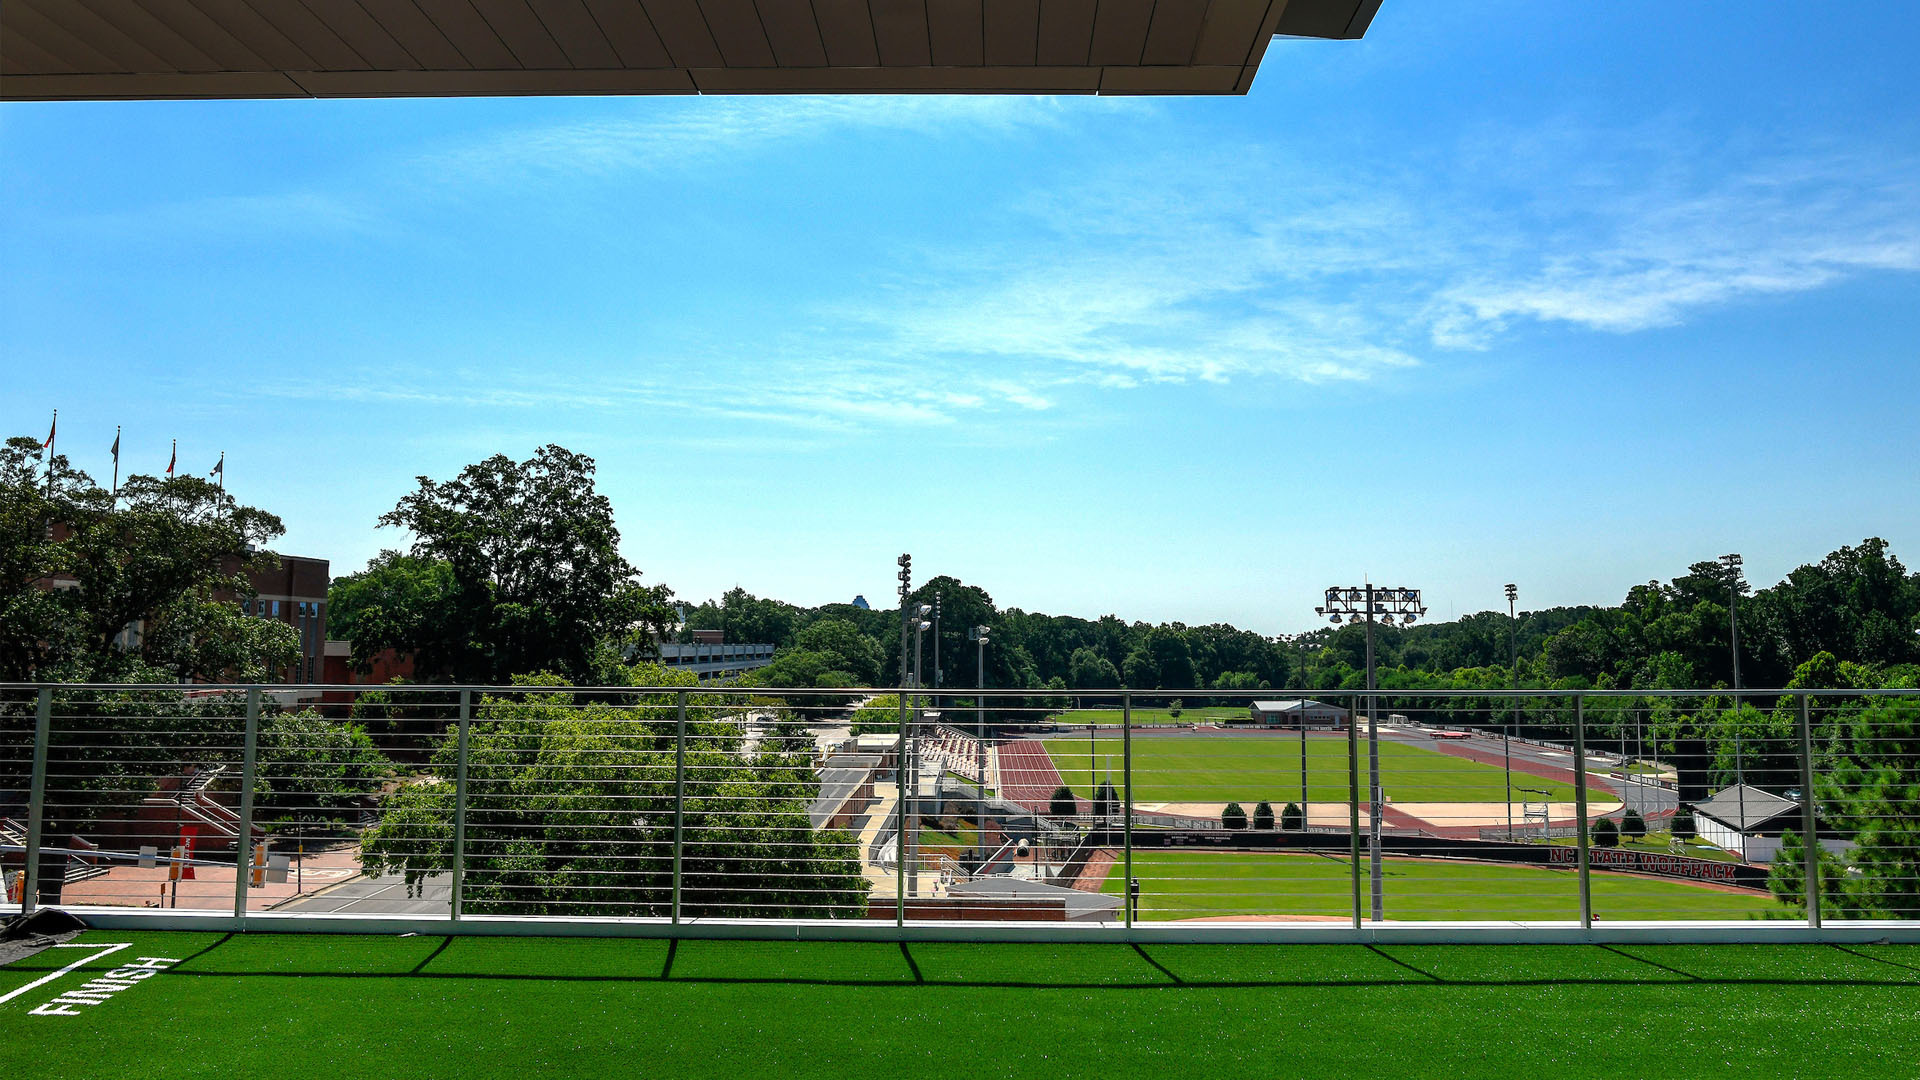 A view from Carmichael Complex overlooking nearby athletic fields.